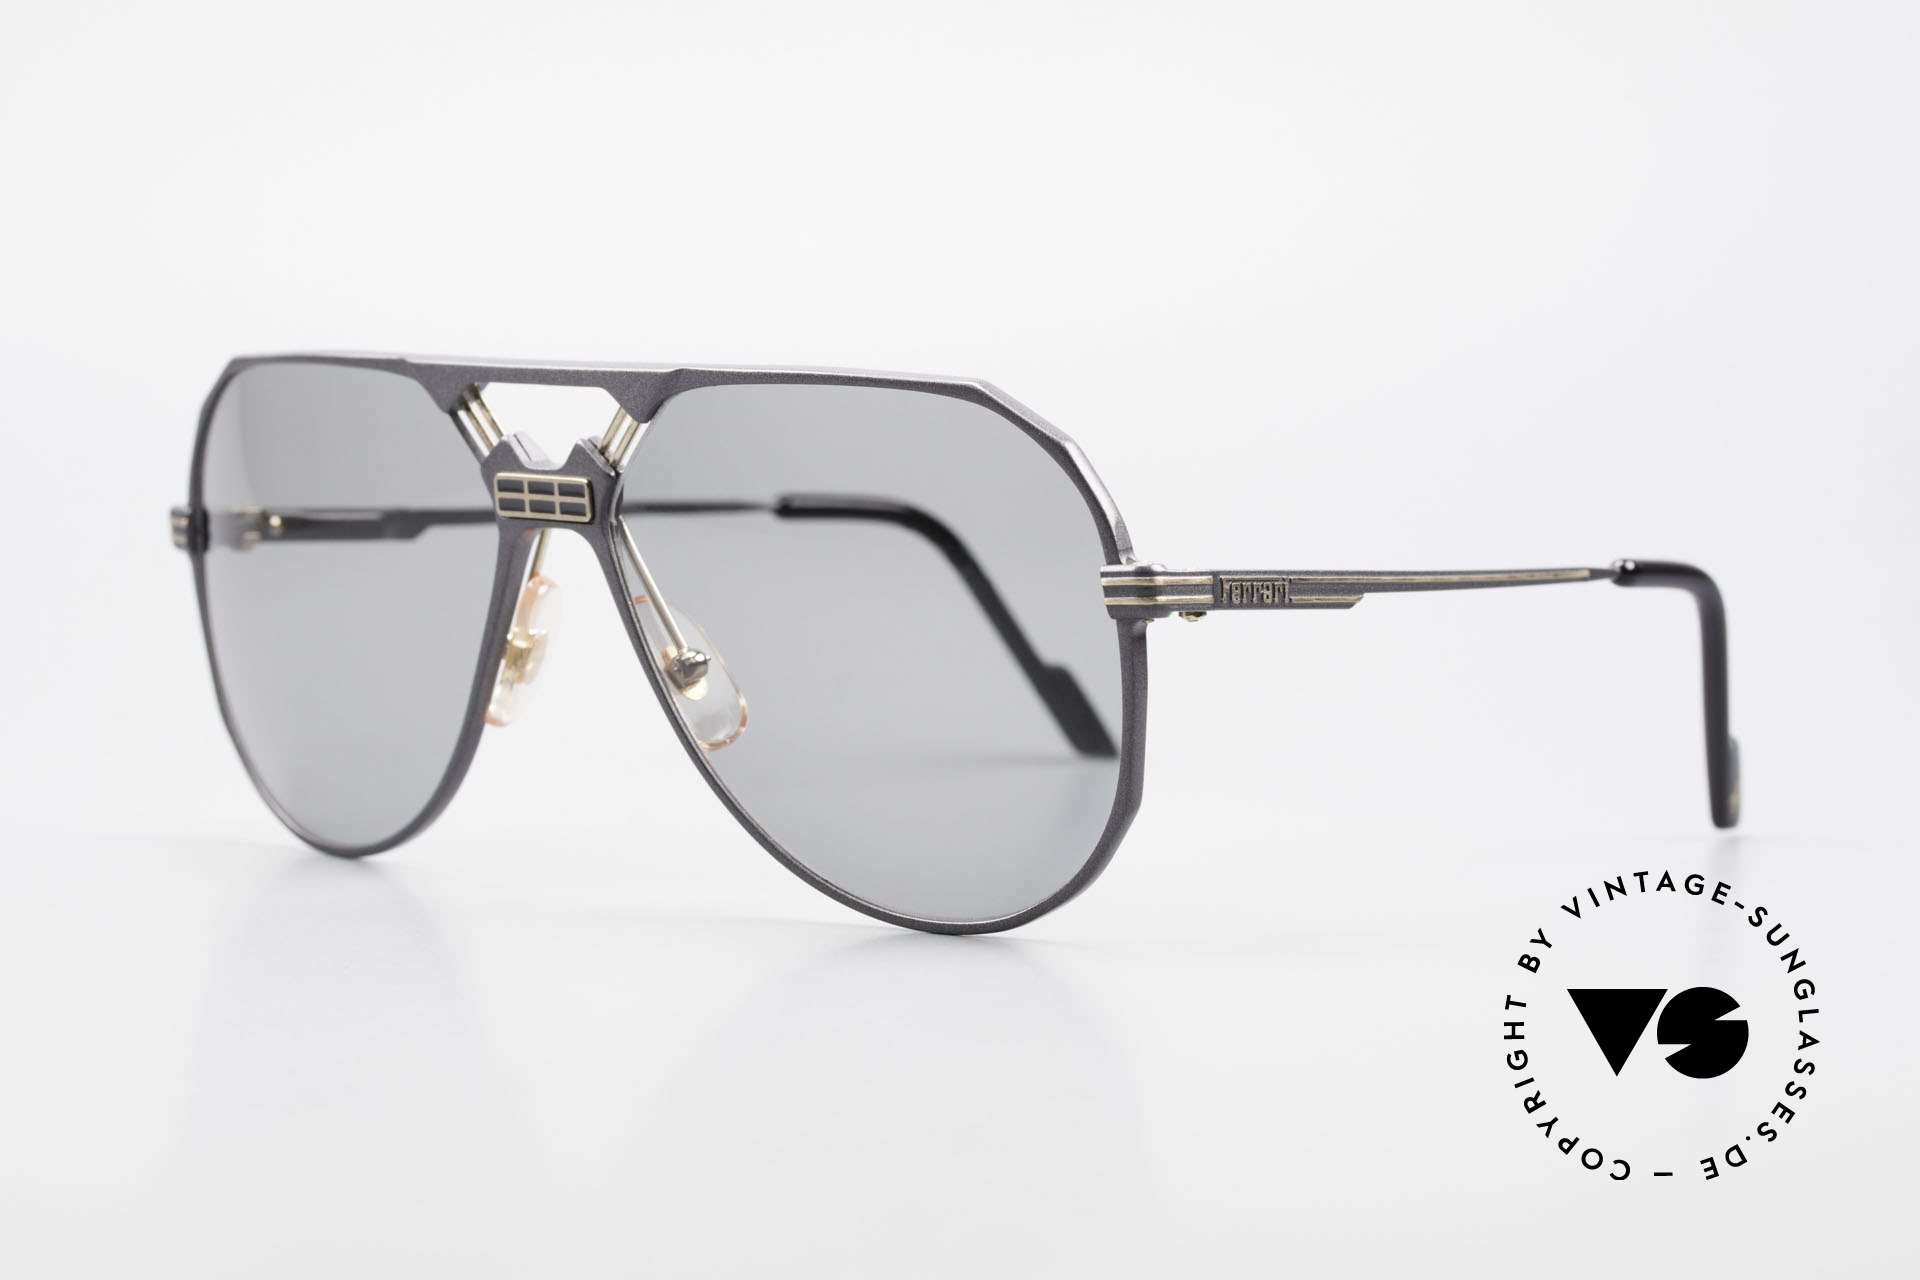 Ferrari F23/S 90's Aviator Sports Sunglasses, noble frame design (hybrid between sport & chic), Made for Men